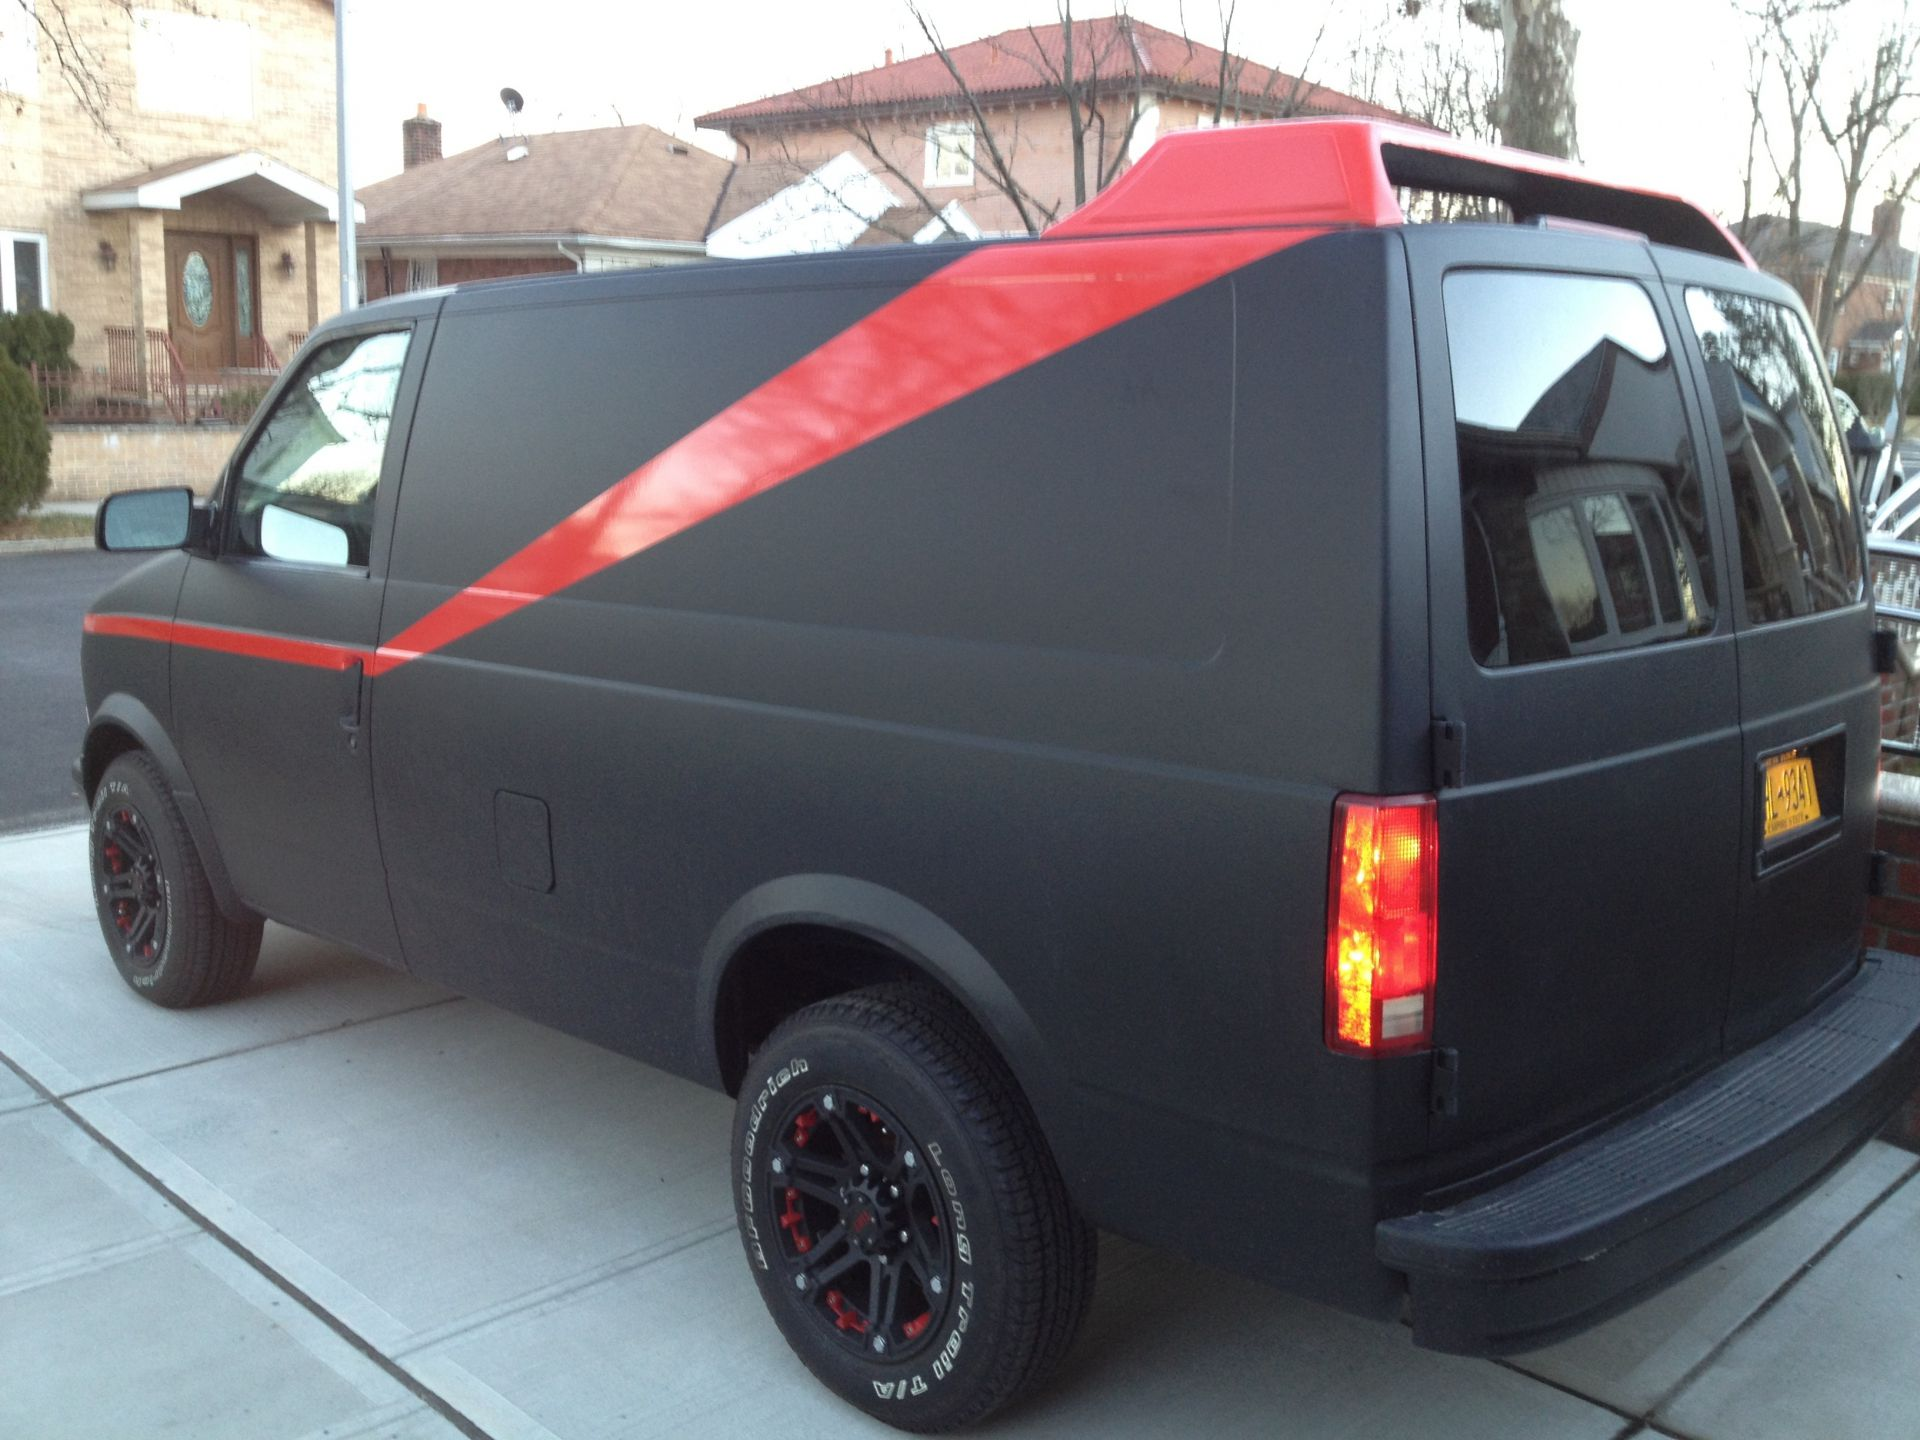 Phase 2: My version of the A-team van